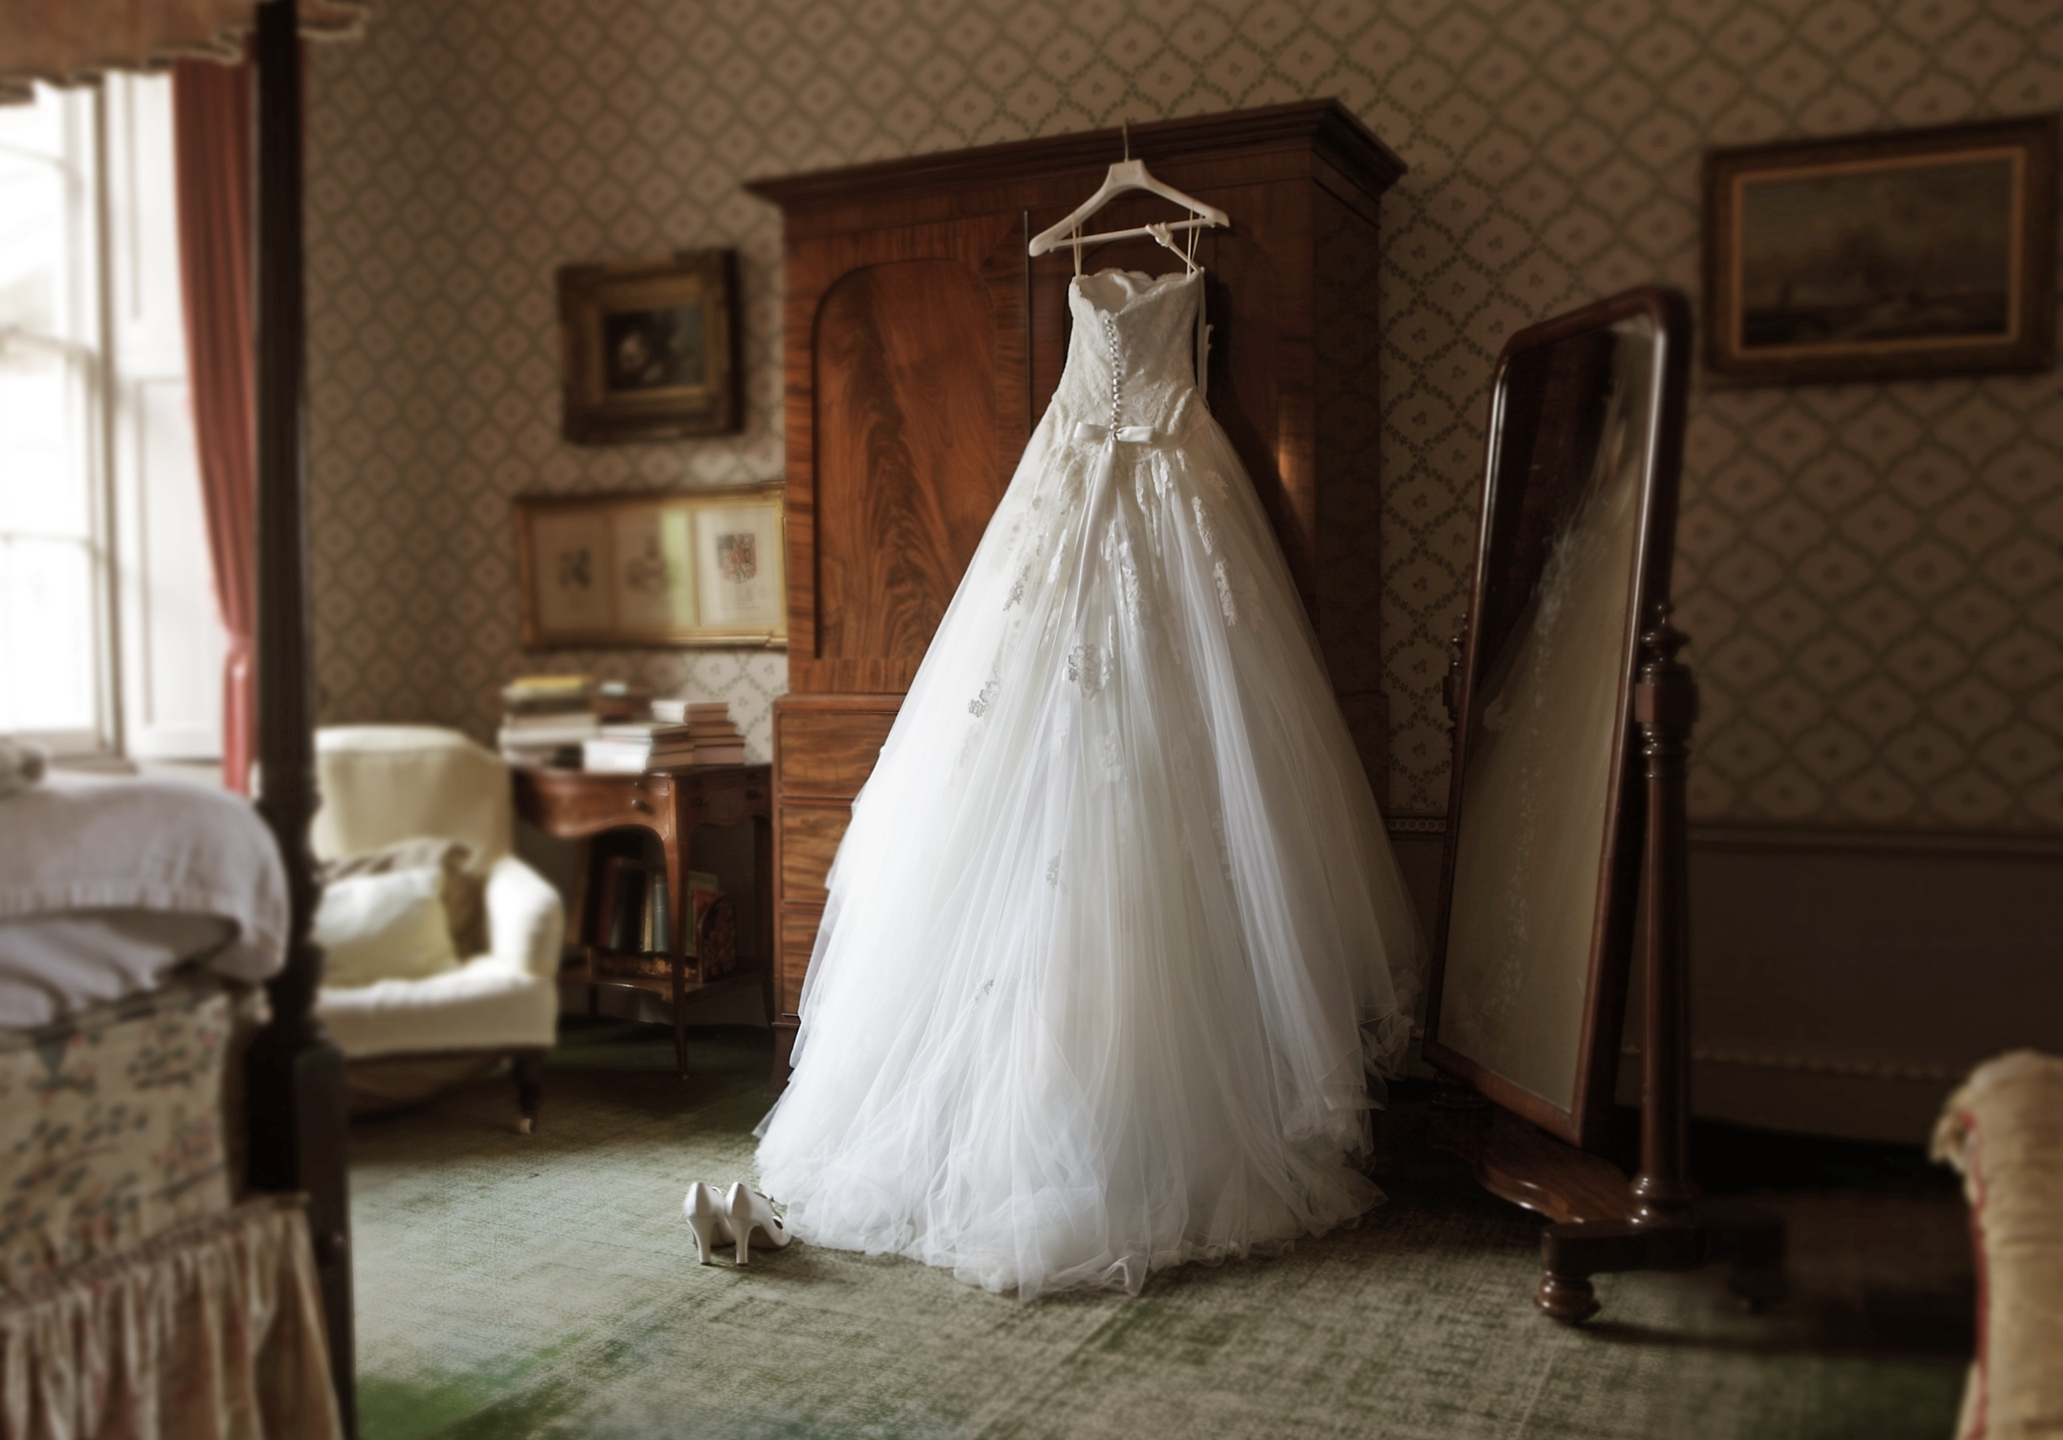 wedding dress in hotel room (Getty Images)